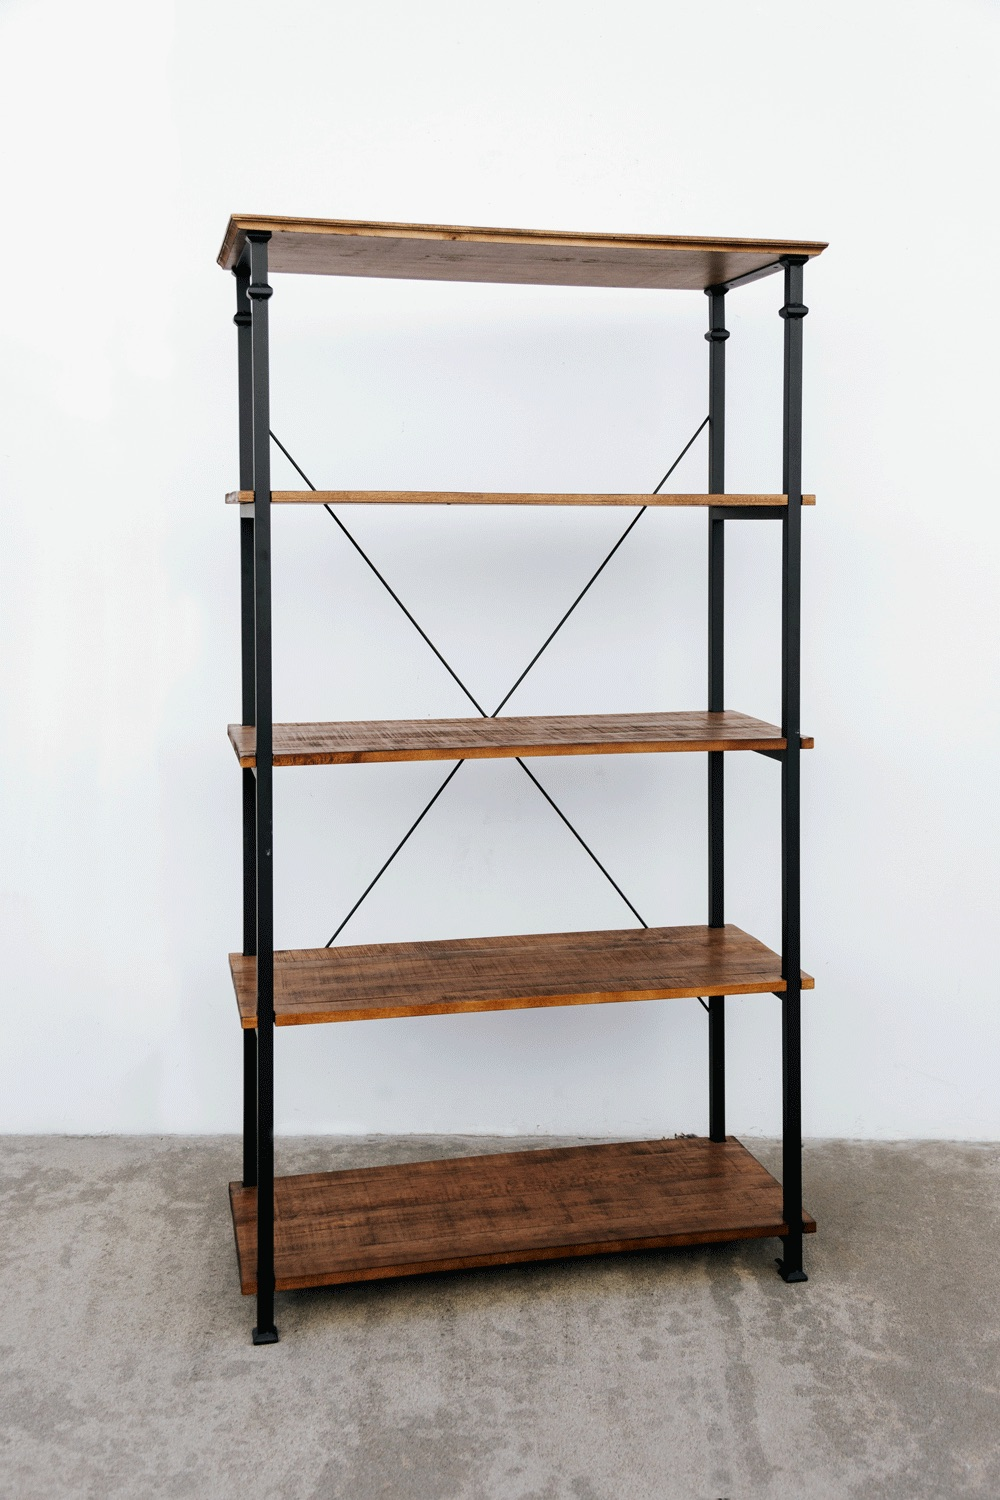 Wooden X Shelf $75